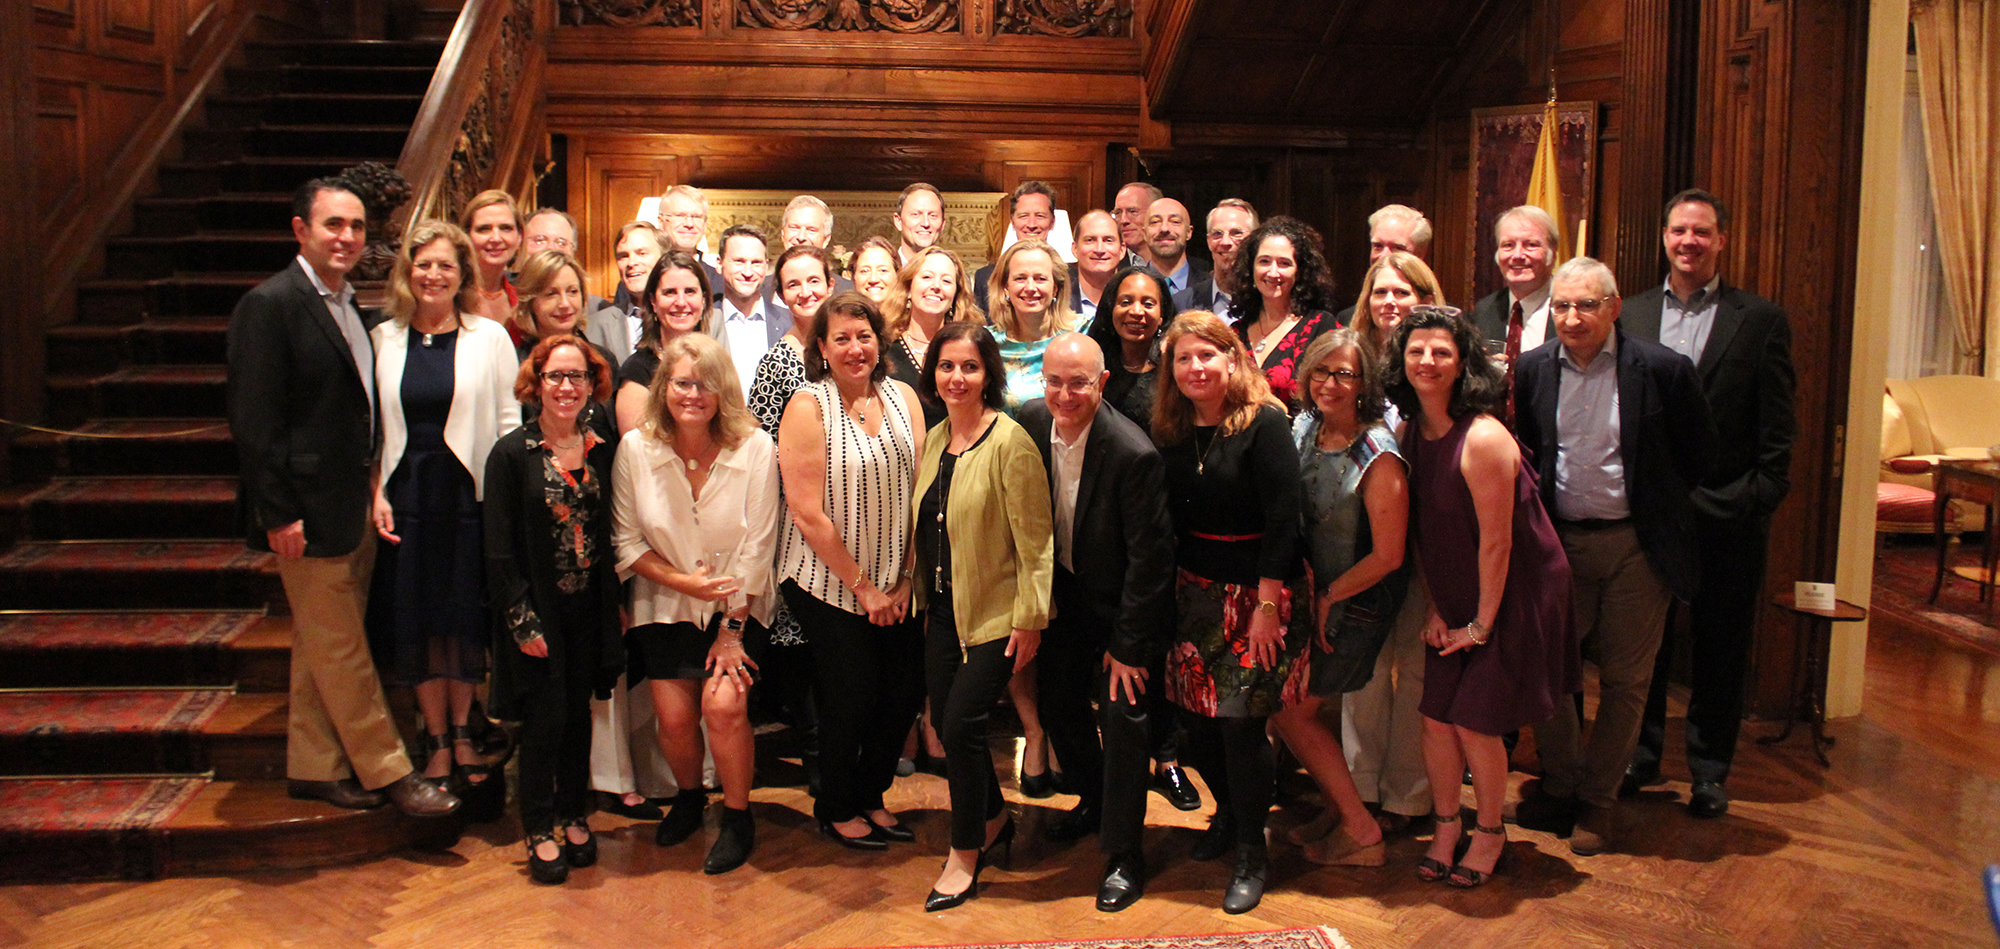 Members of the Class of 1992 celebrate their 25th reunion in Washington, DC.